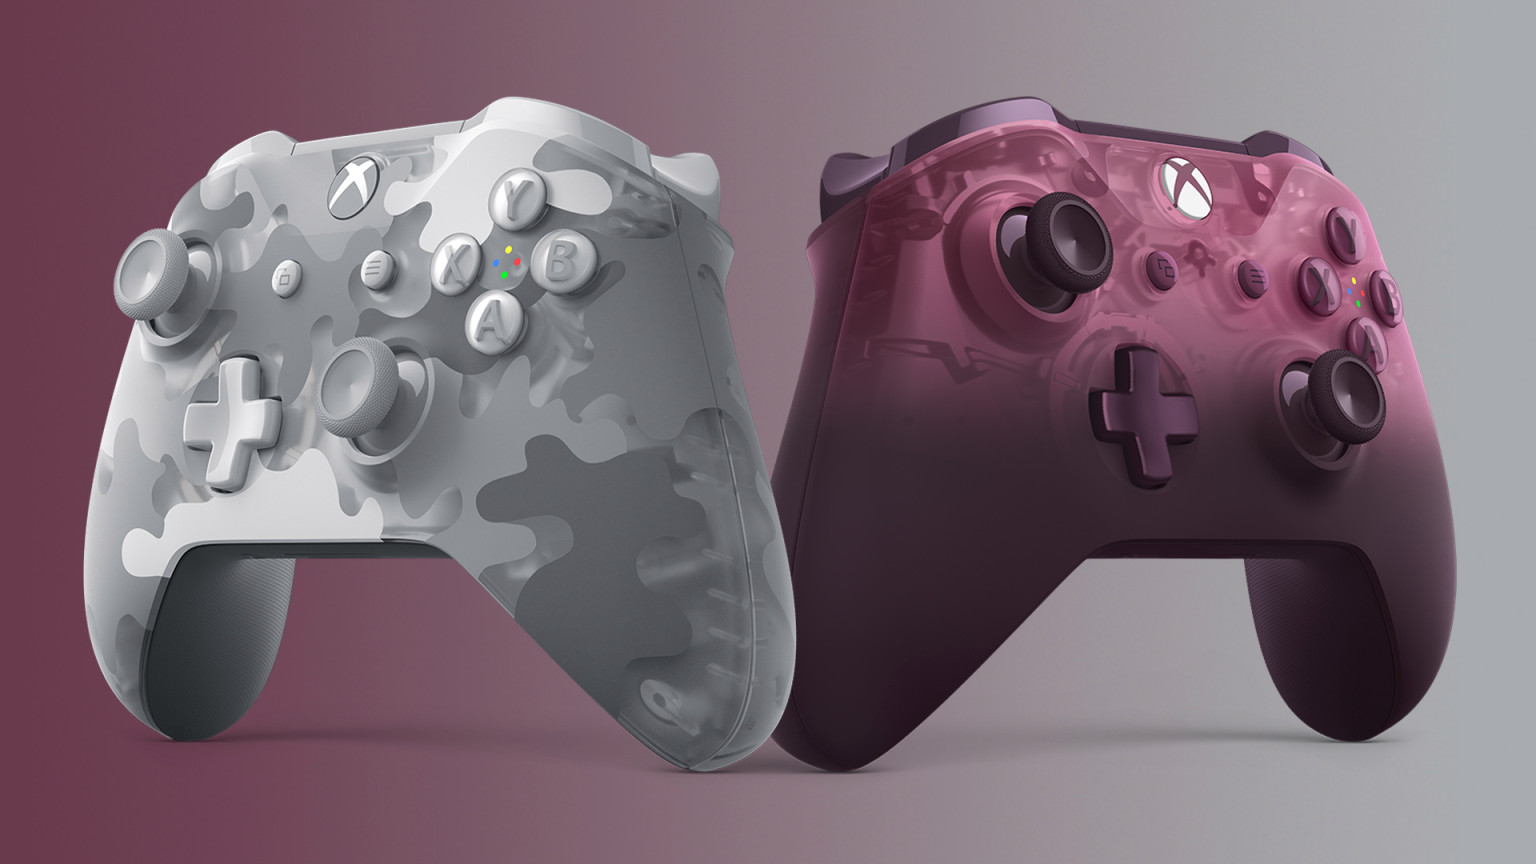 Microsoft announces two new Xbox handles, mirage magenta and Arctic camouflage